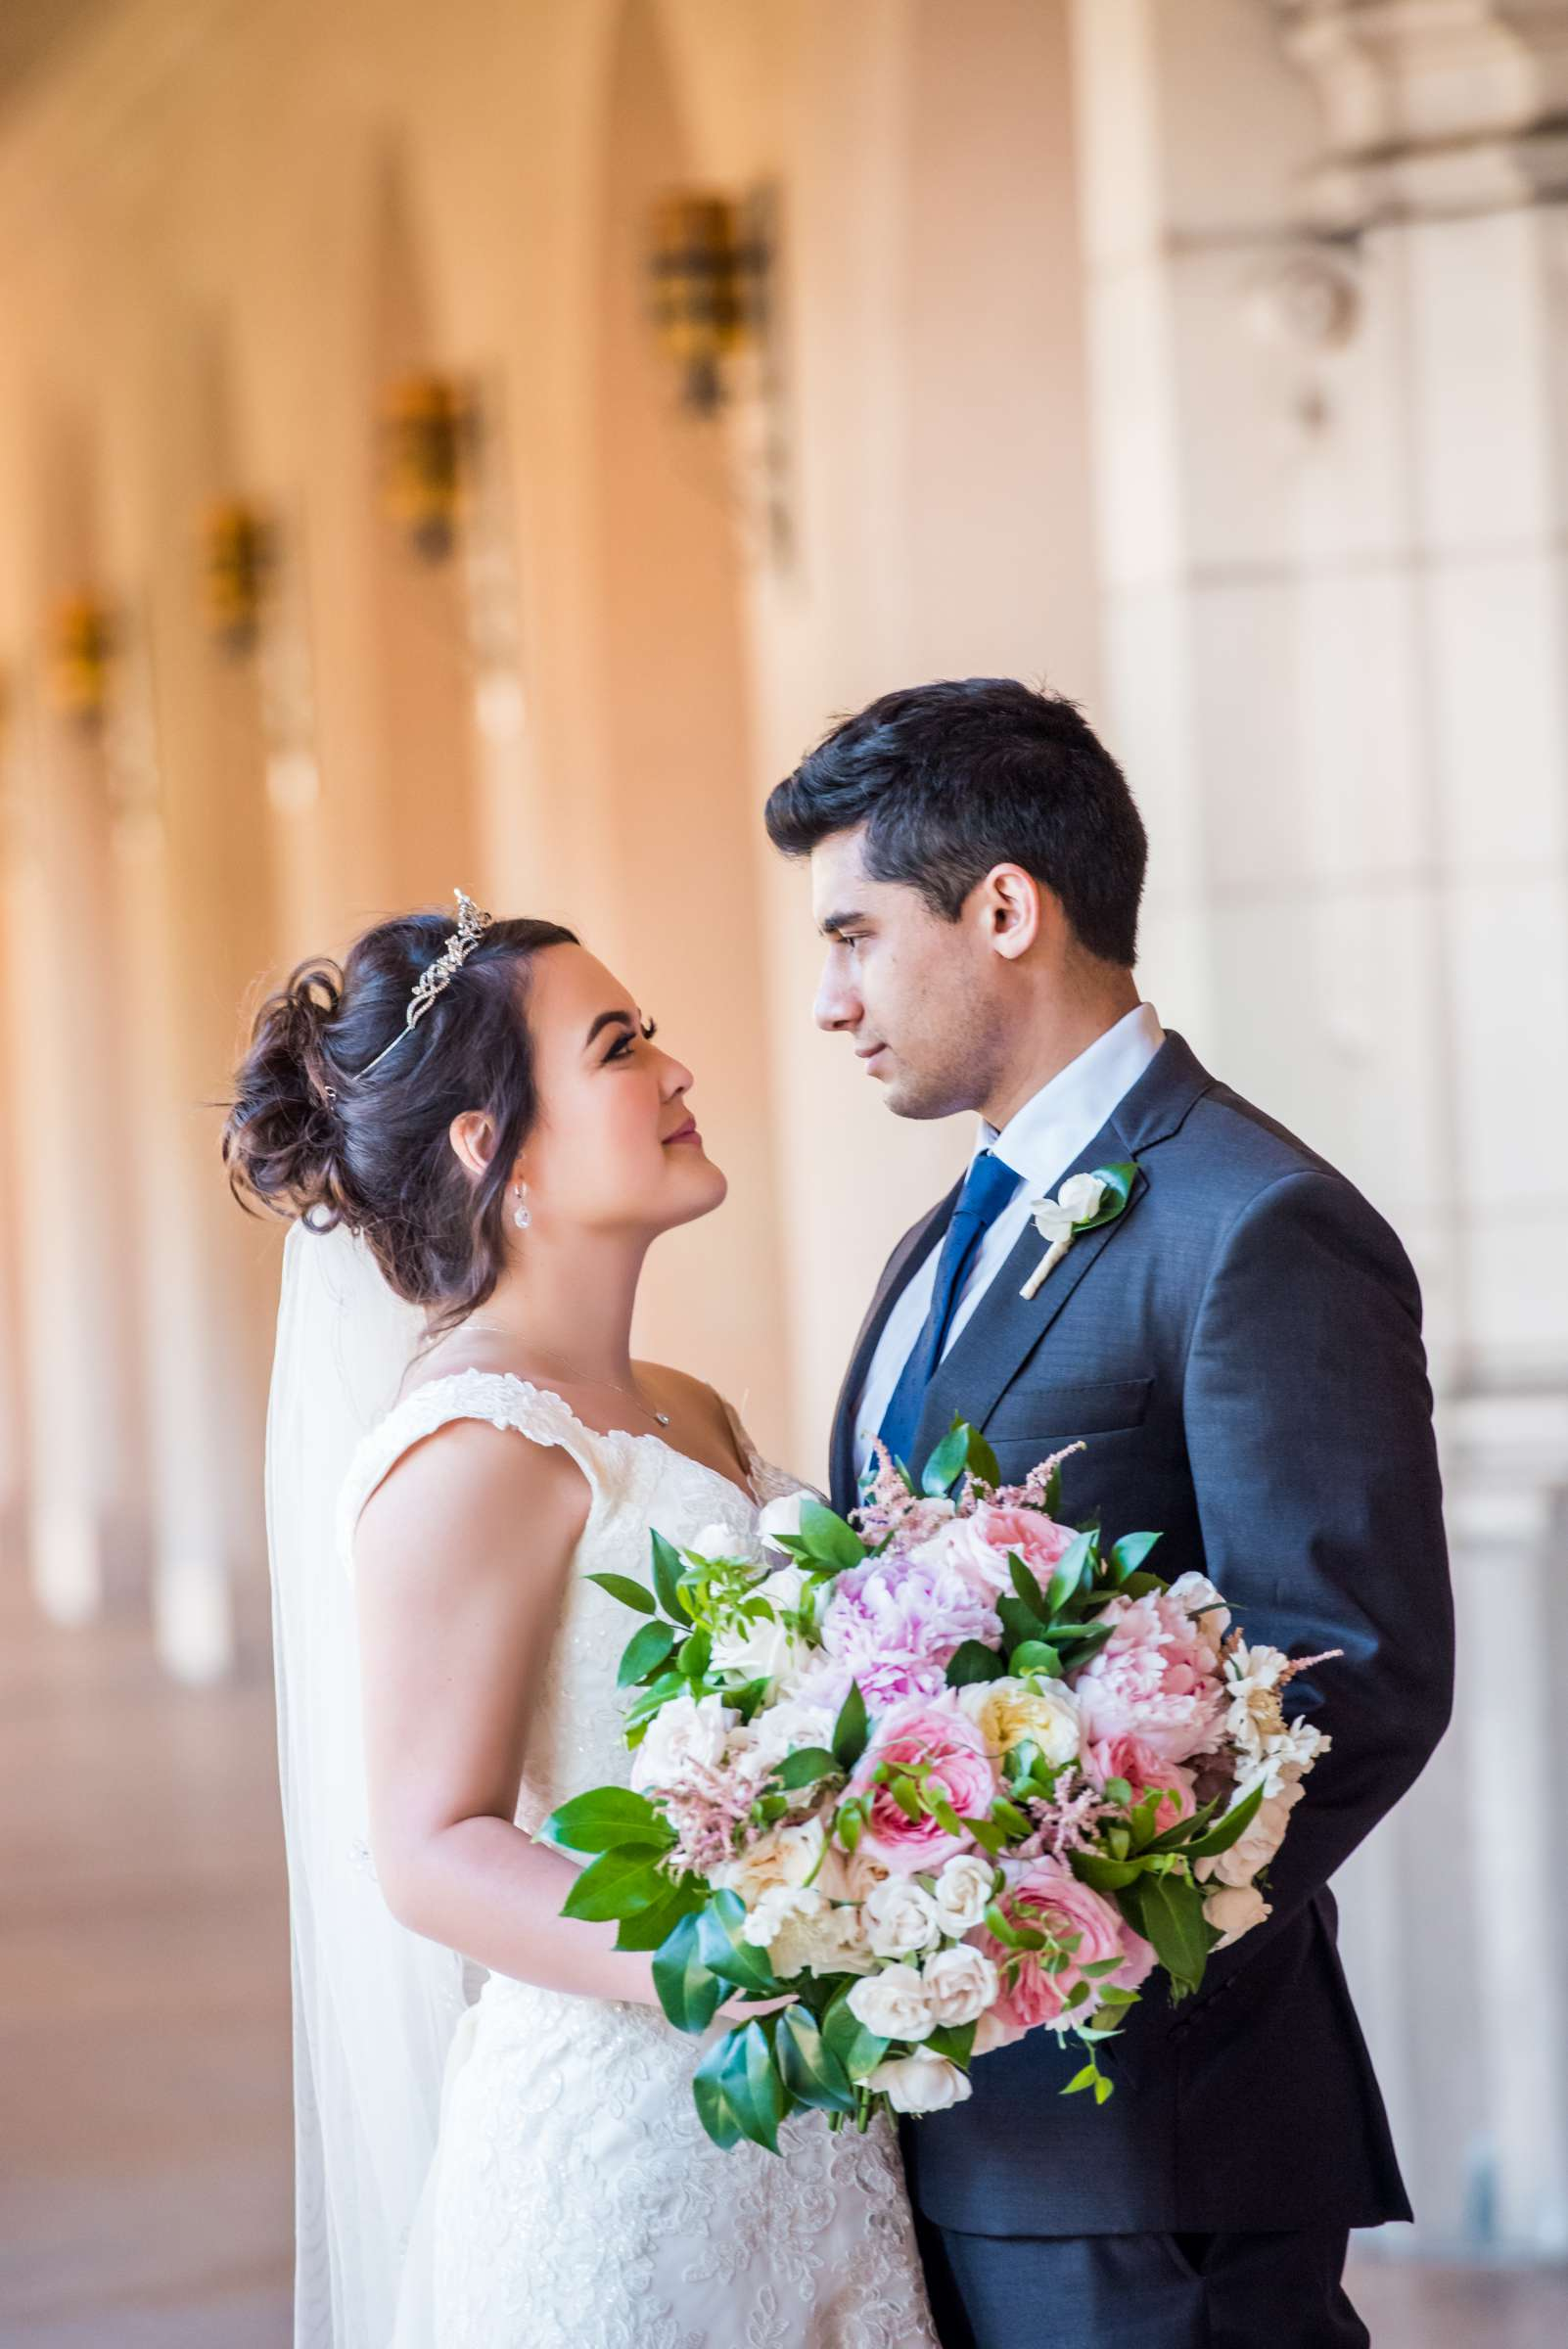 The Prado Wedding coordinated by First Comes Love Weddings & Events, Melissa and Michael Wedding Photo #479505 by True Photography